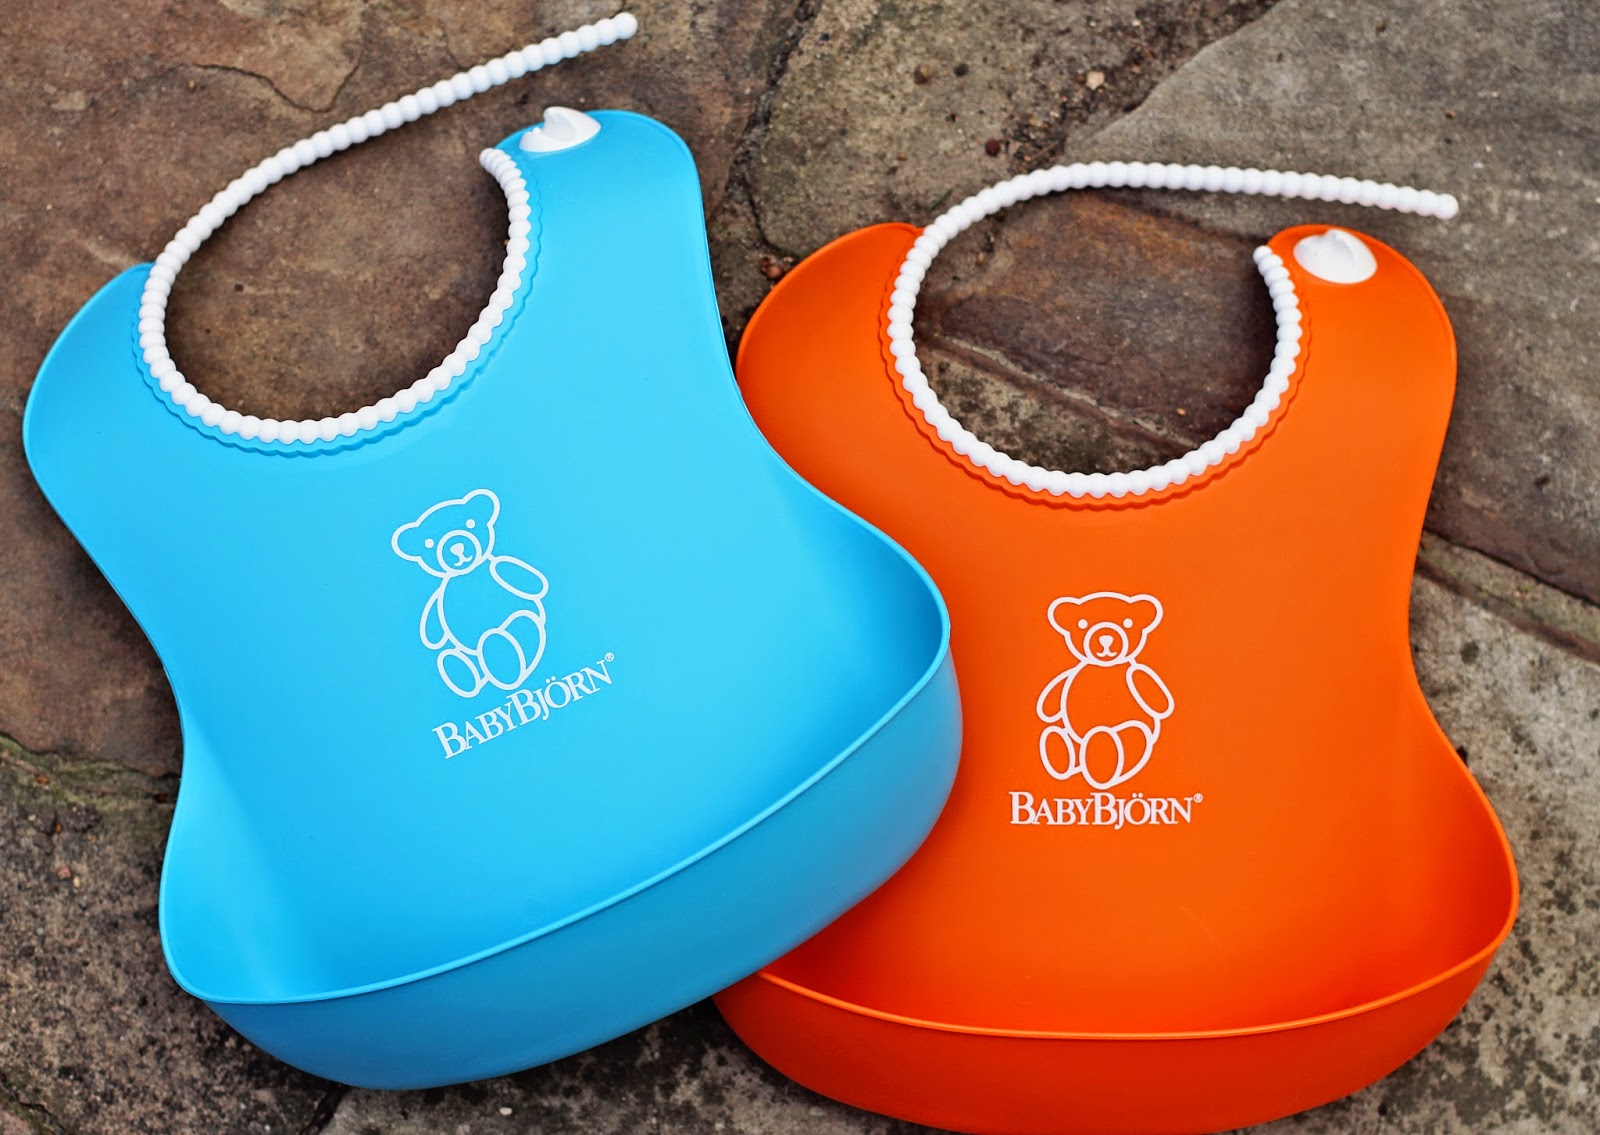 3342424c23a We received a package of 2 plastic bibs and 2 plate spoon combo sets